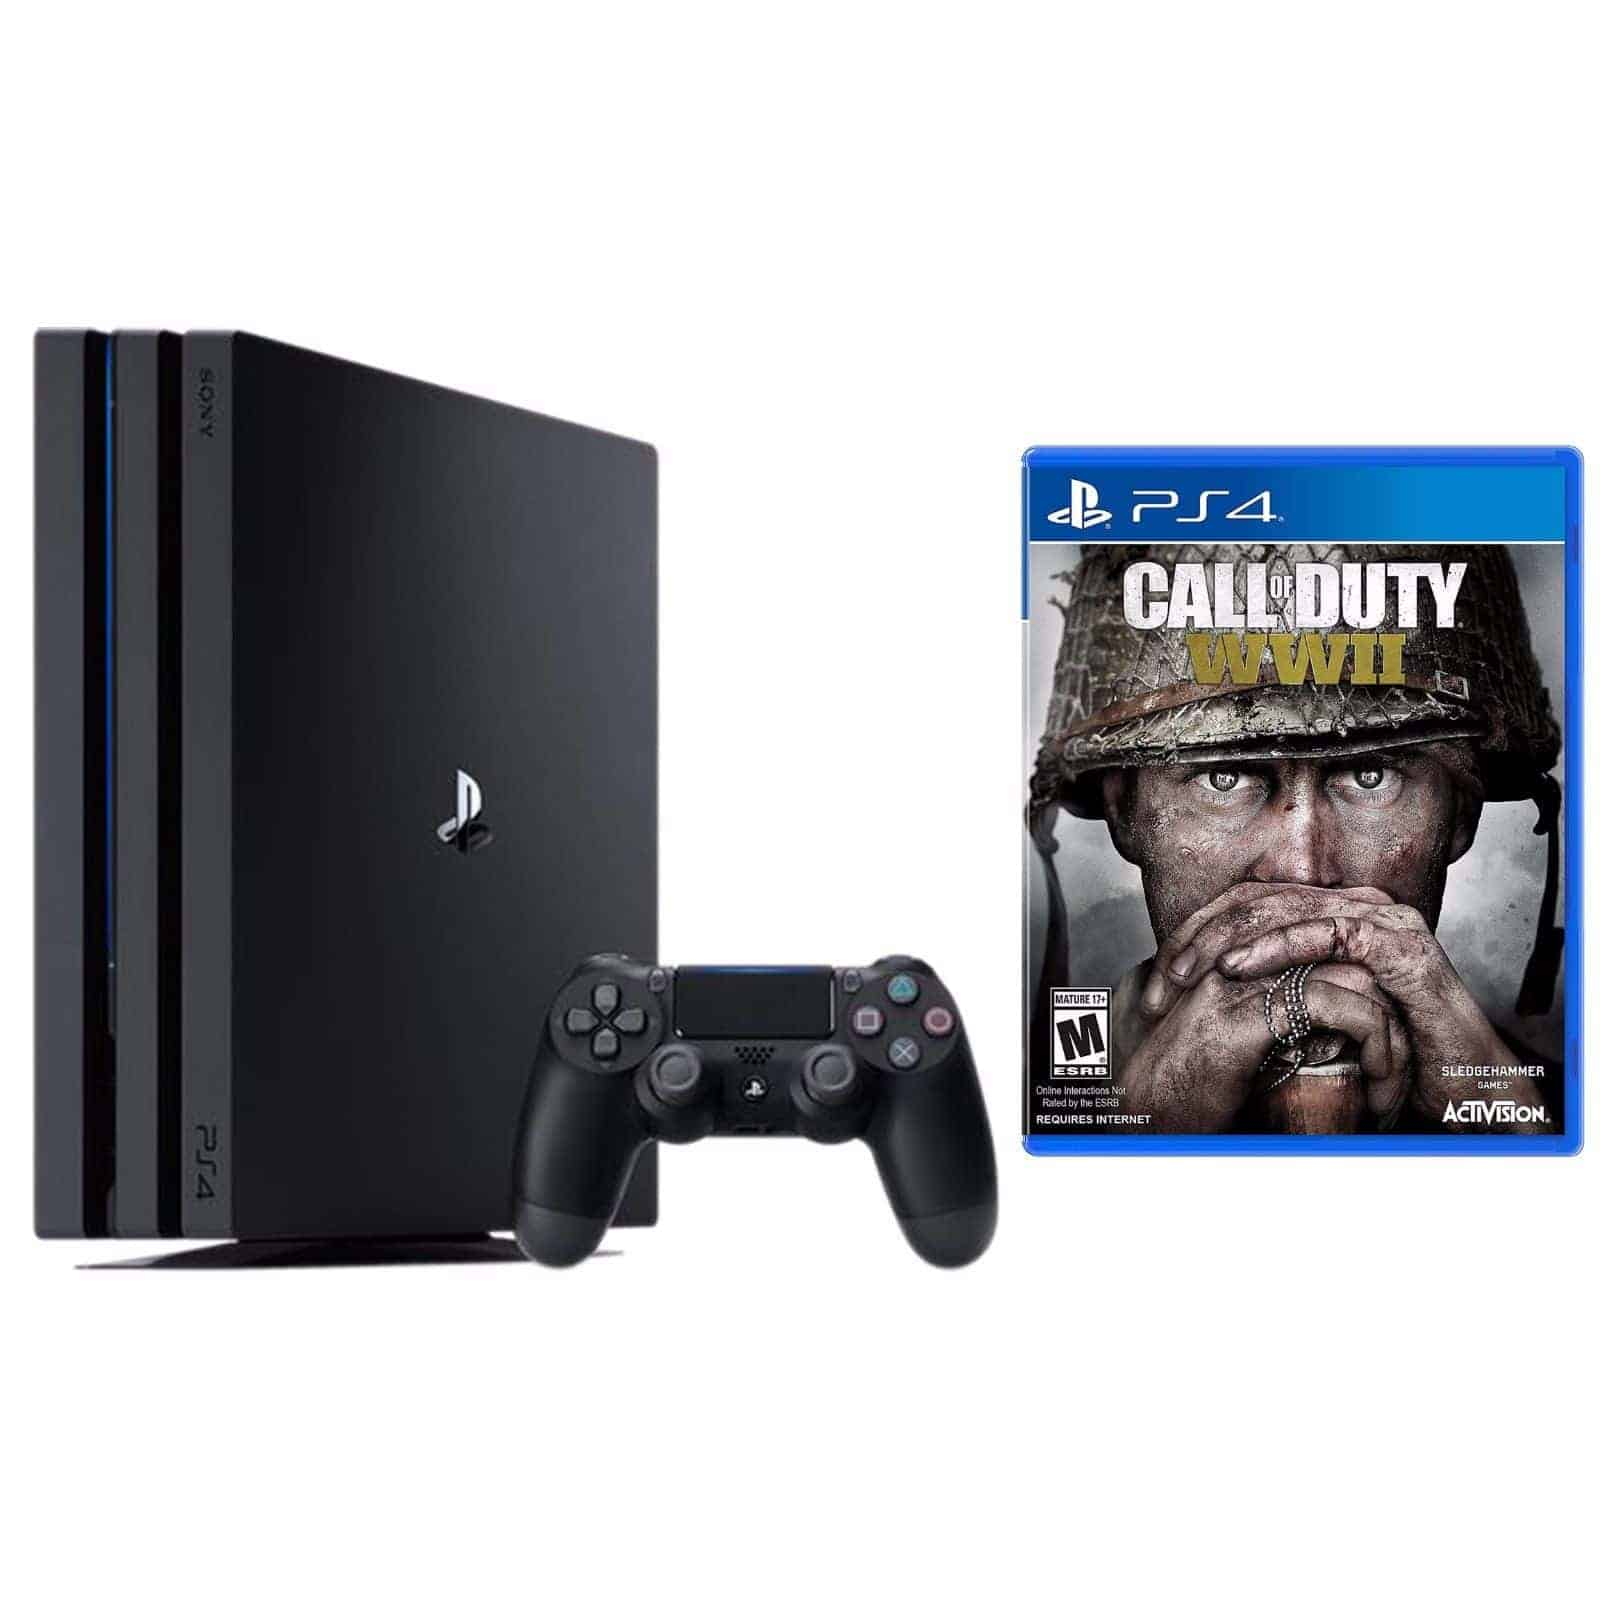 Sony PlayStation 4 Pro 1TB console + Call of Duty: WWII